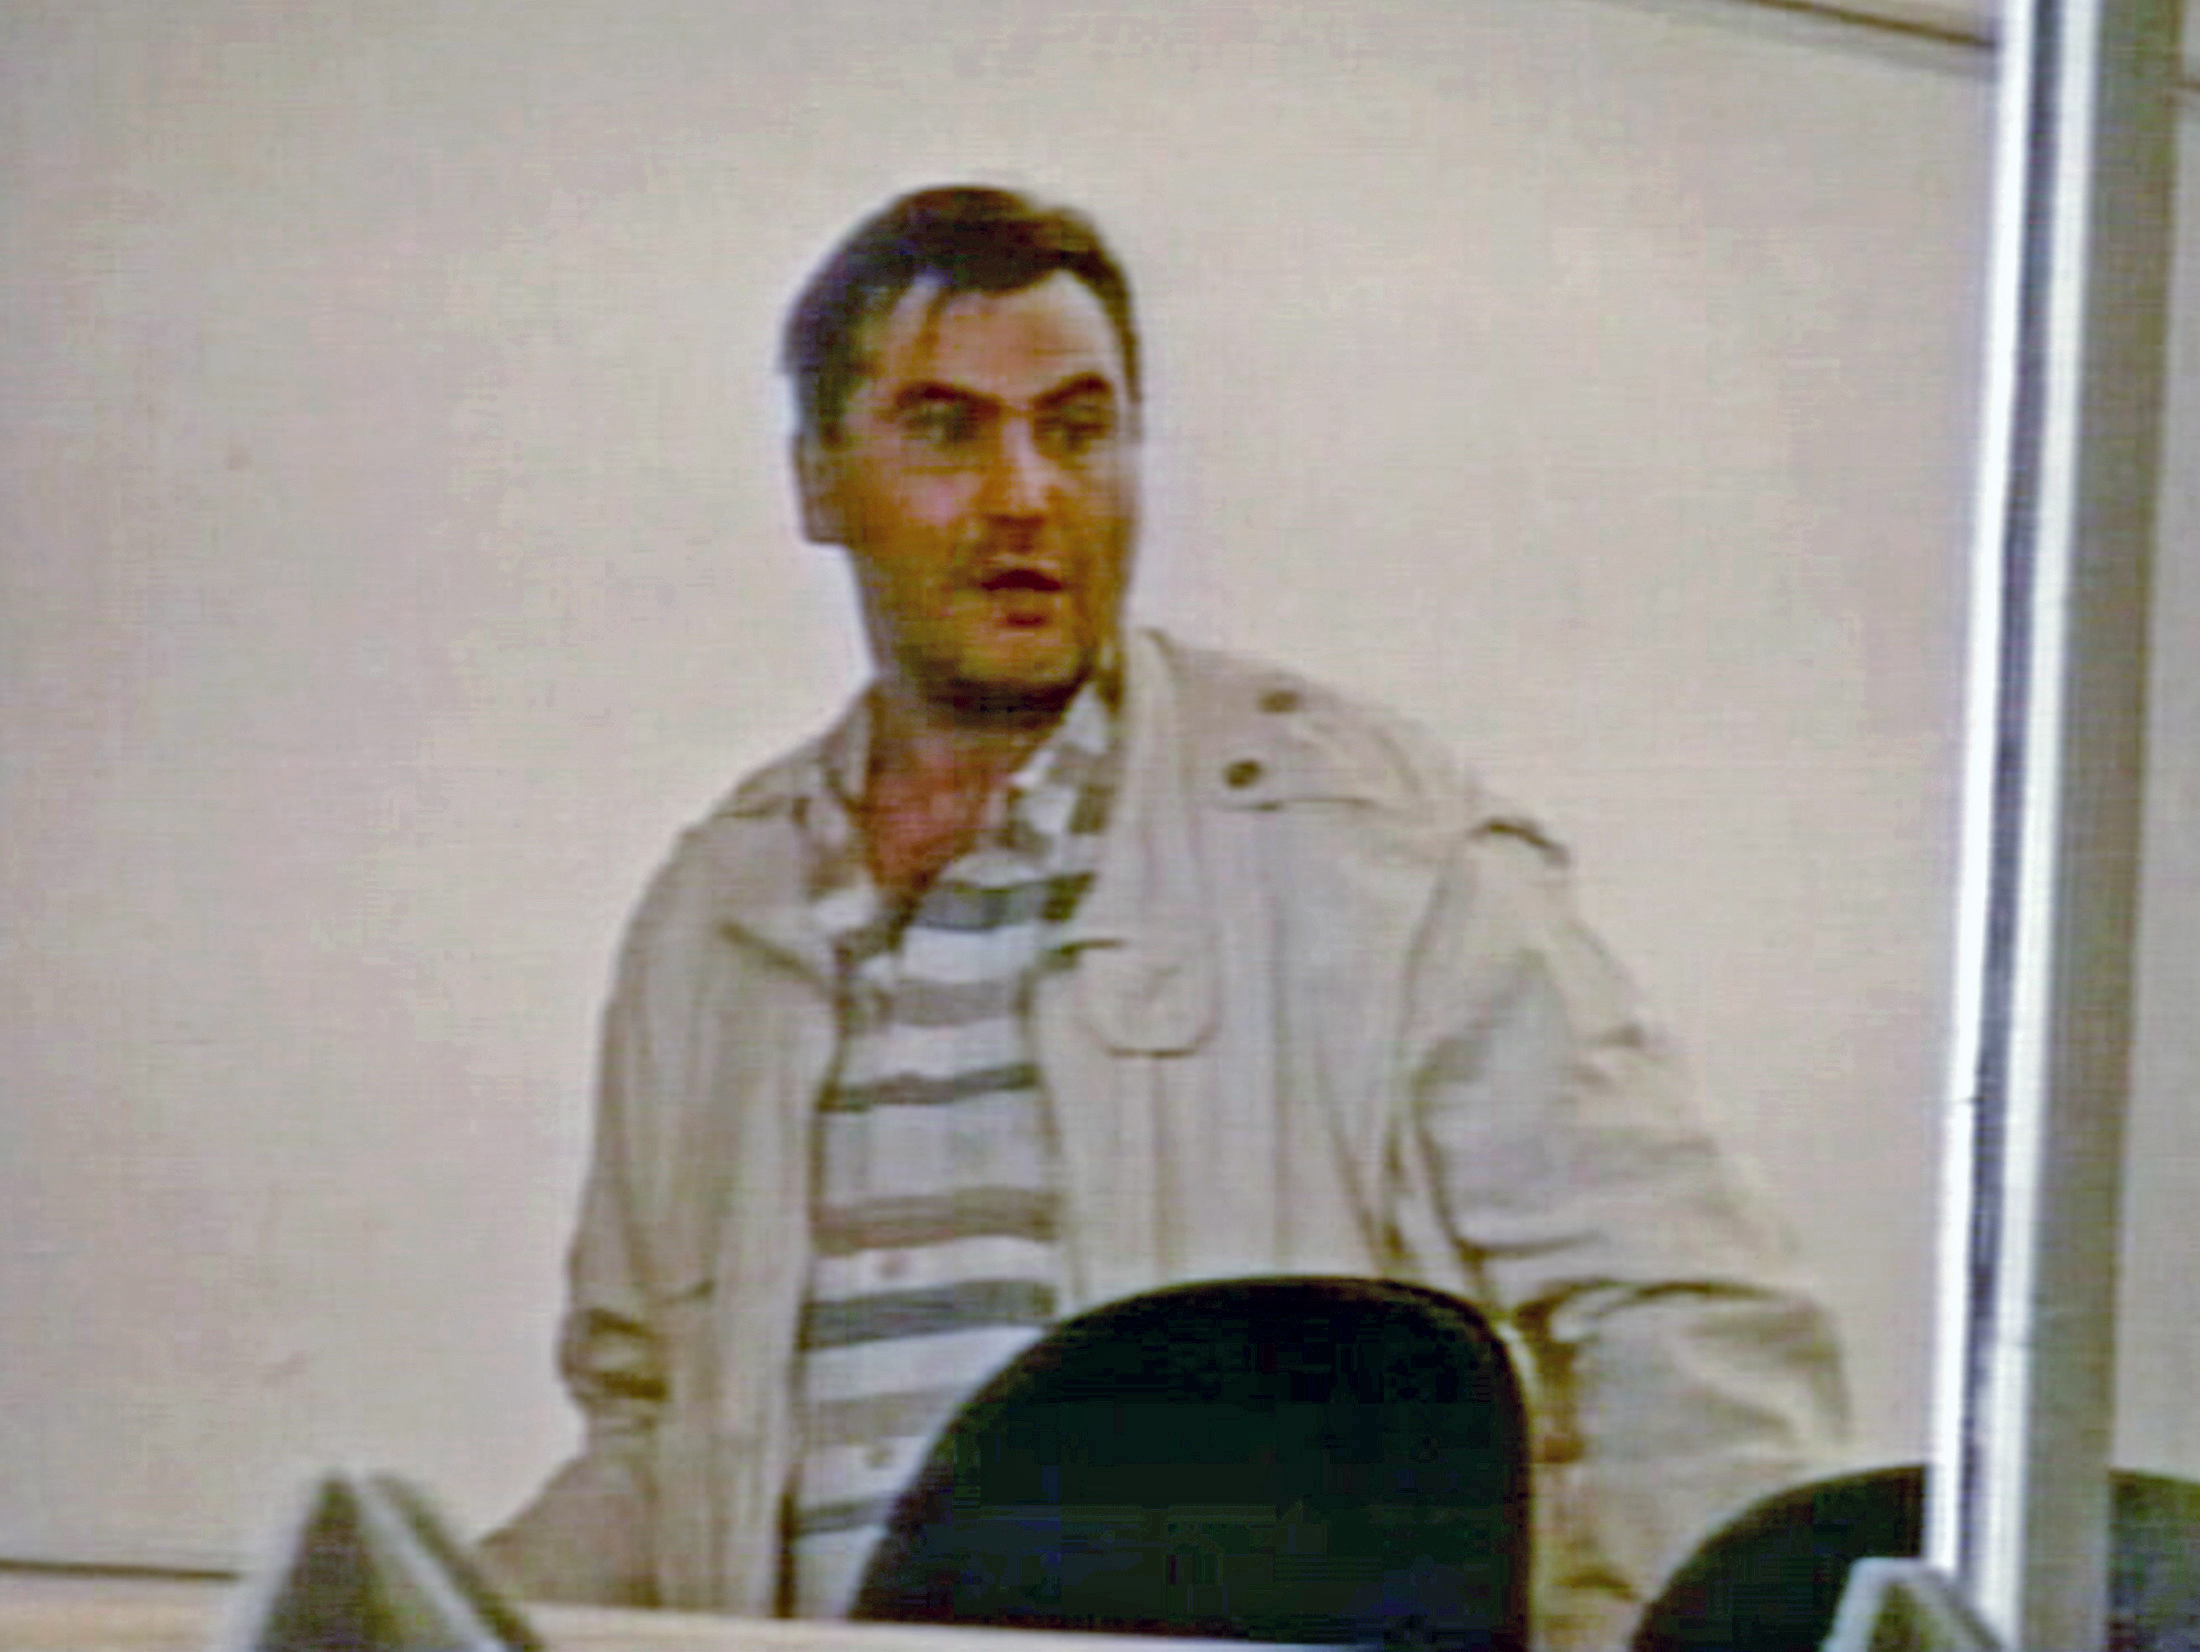 Polish immigrant Robert Dziekanski is seen in the arrivals area of the Vancouver airport in this video image